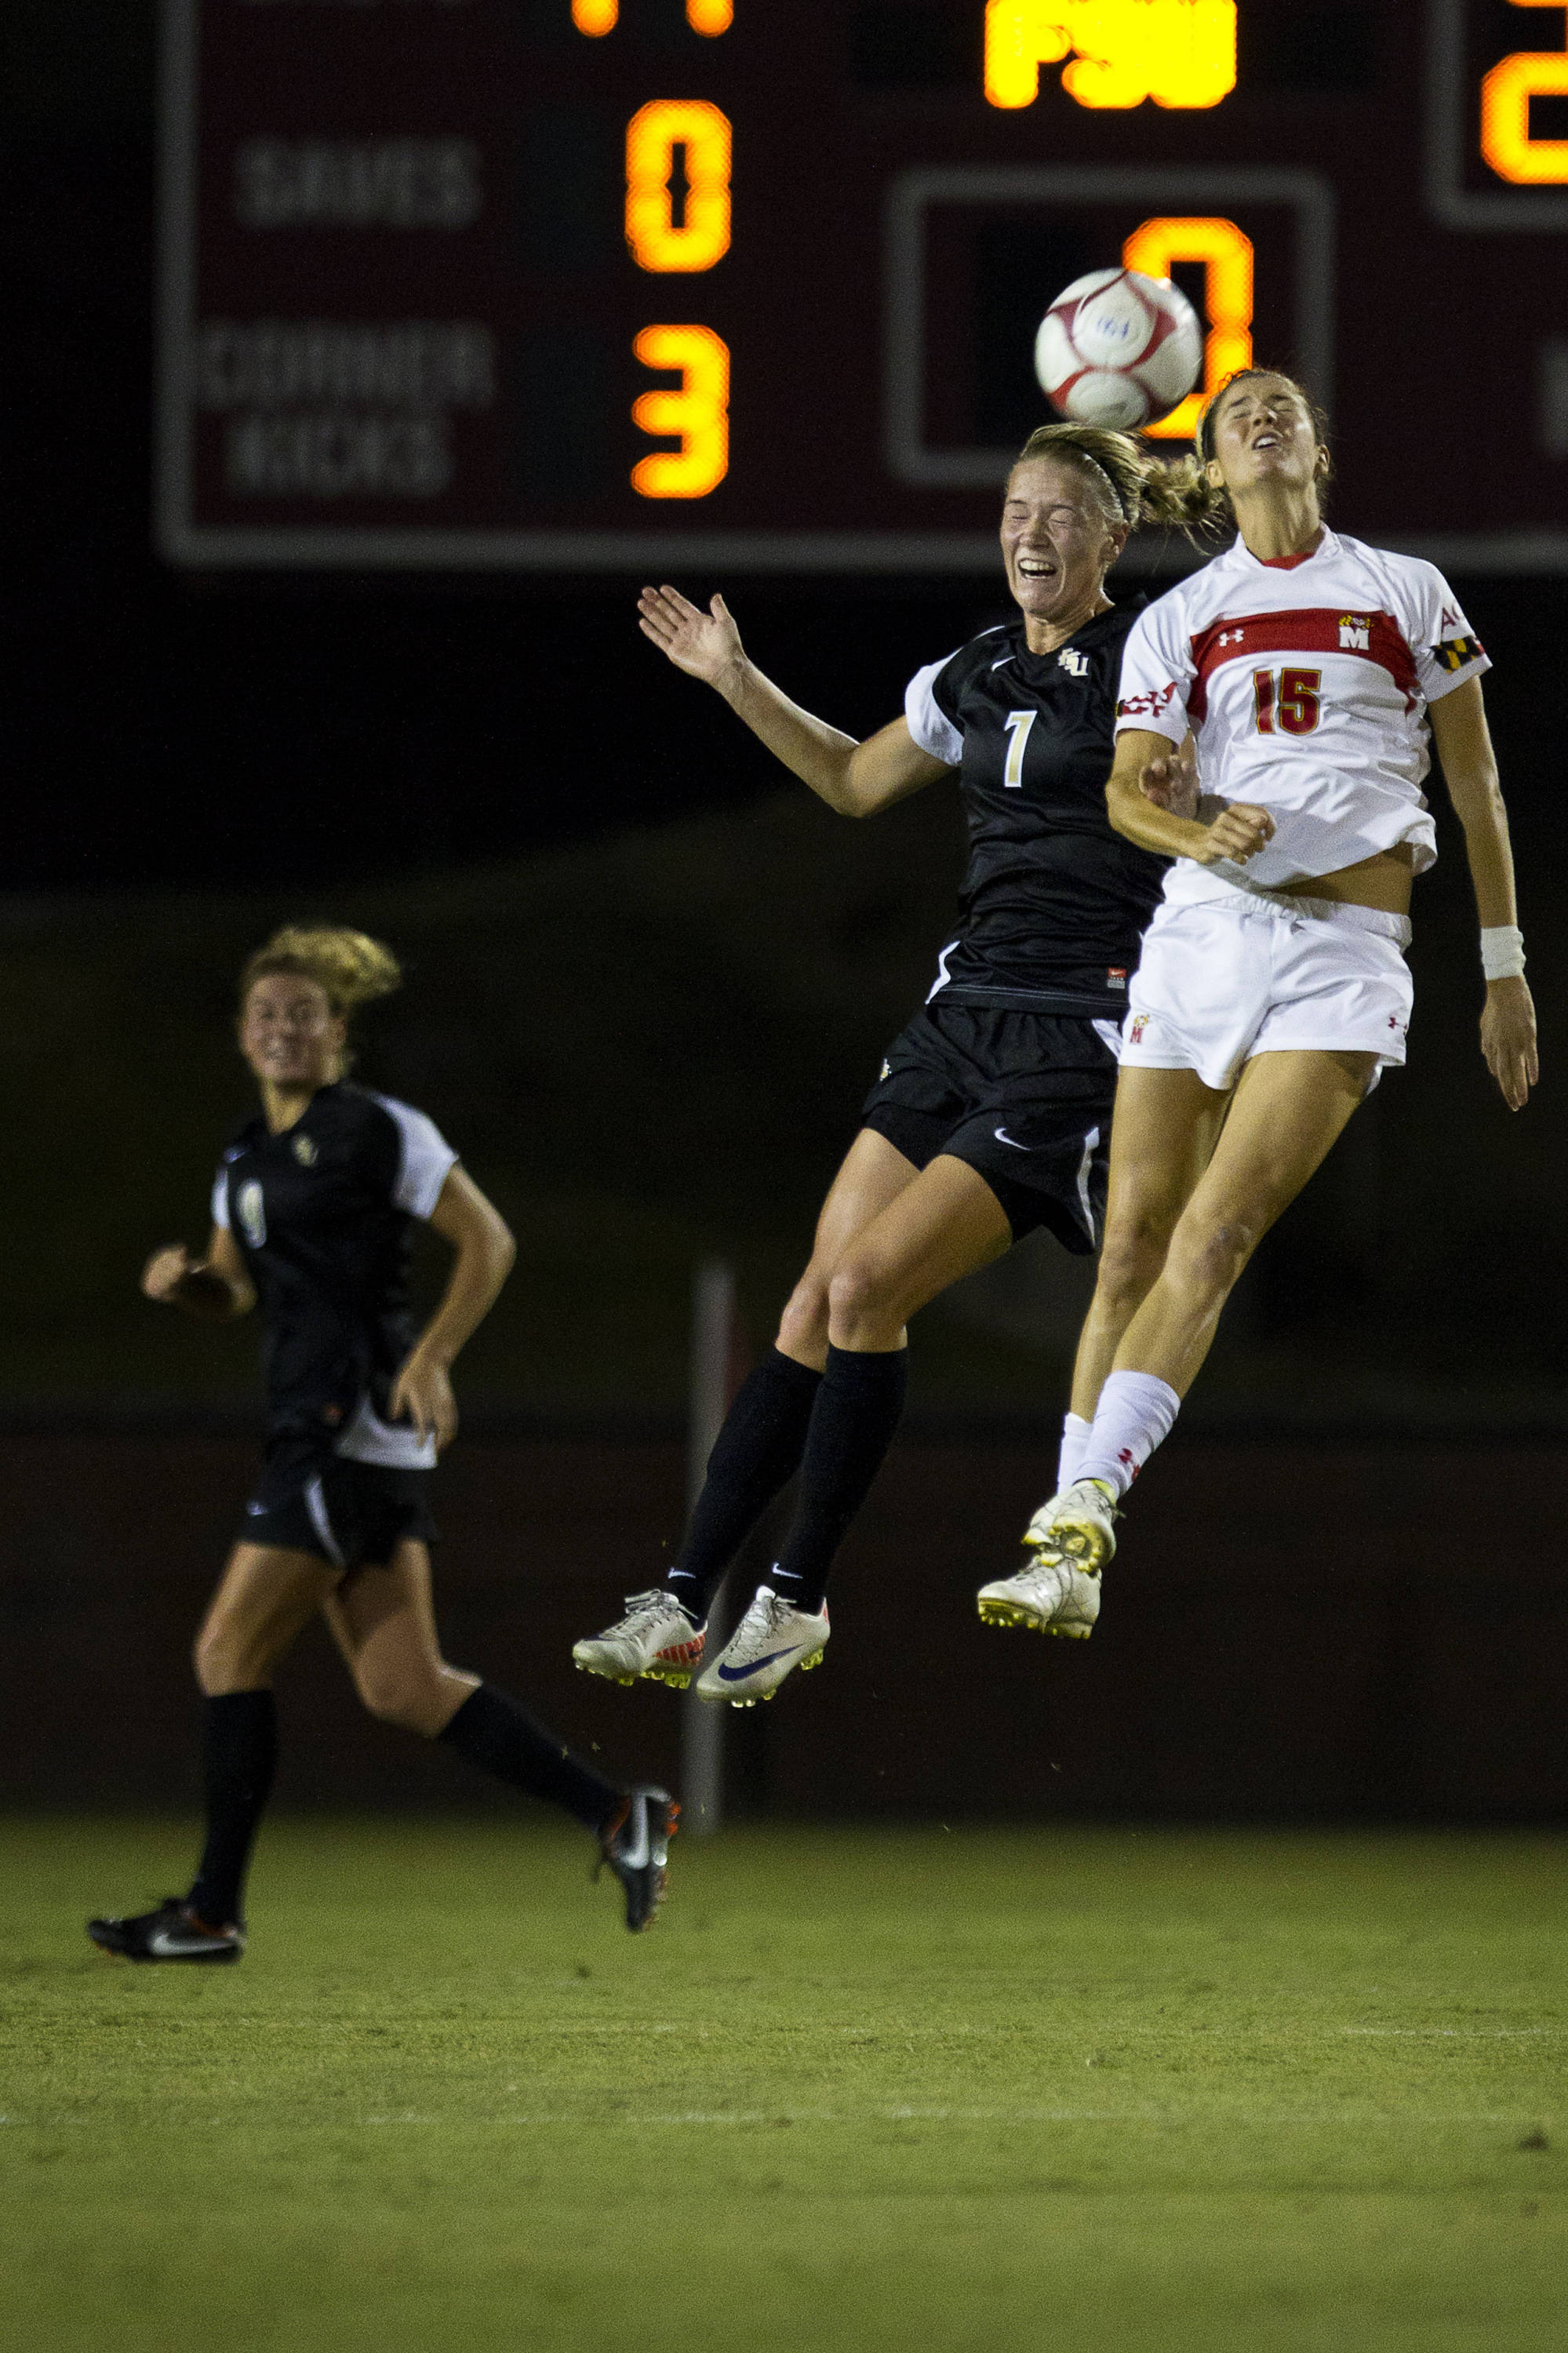 Dagny Brynjarsdottir (7) heads a ball during the game against Maryland on October 13, 2011.